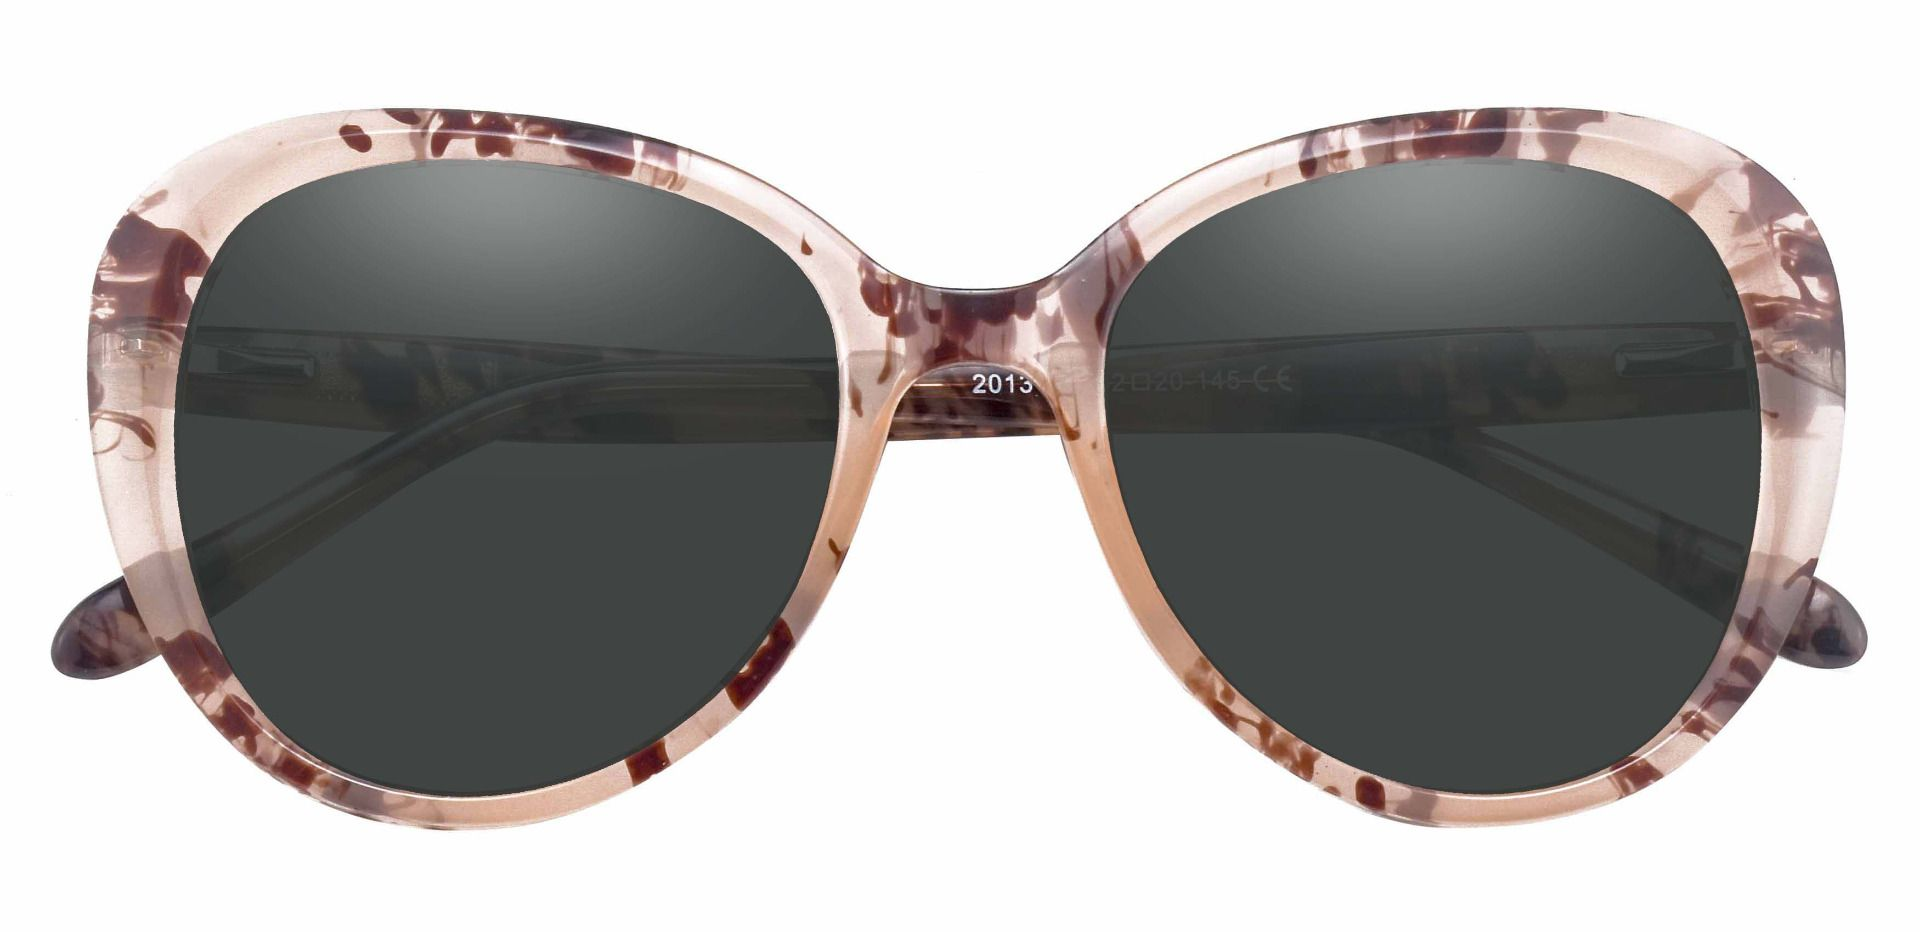 Sheridan Oval Prescription Sunglasses - Floral Frame With Gray Lenses